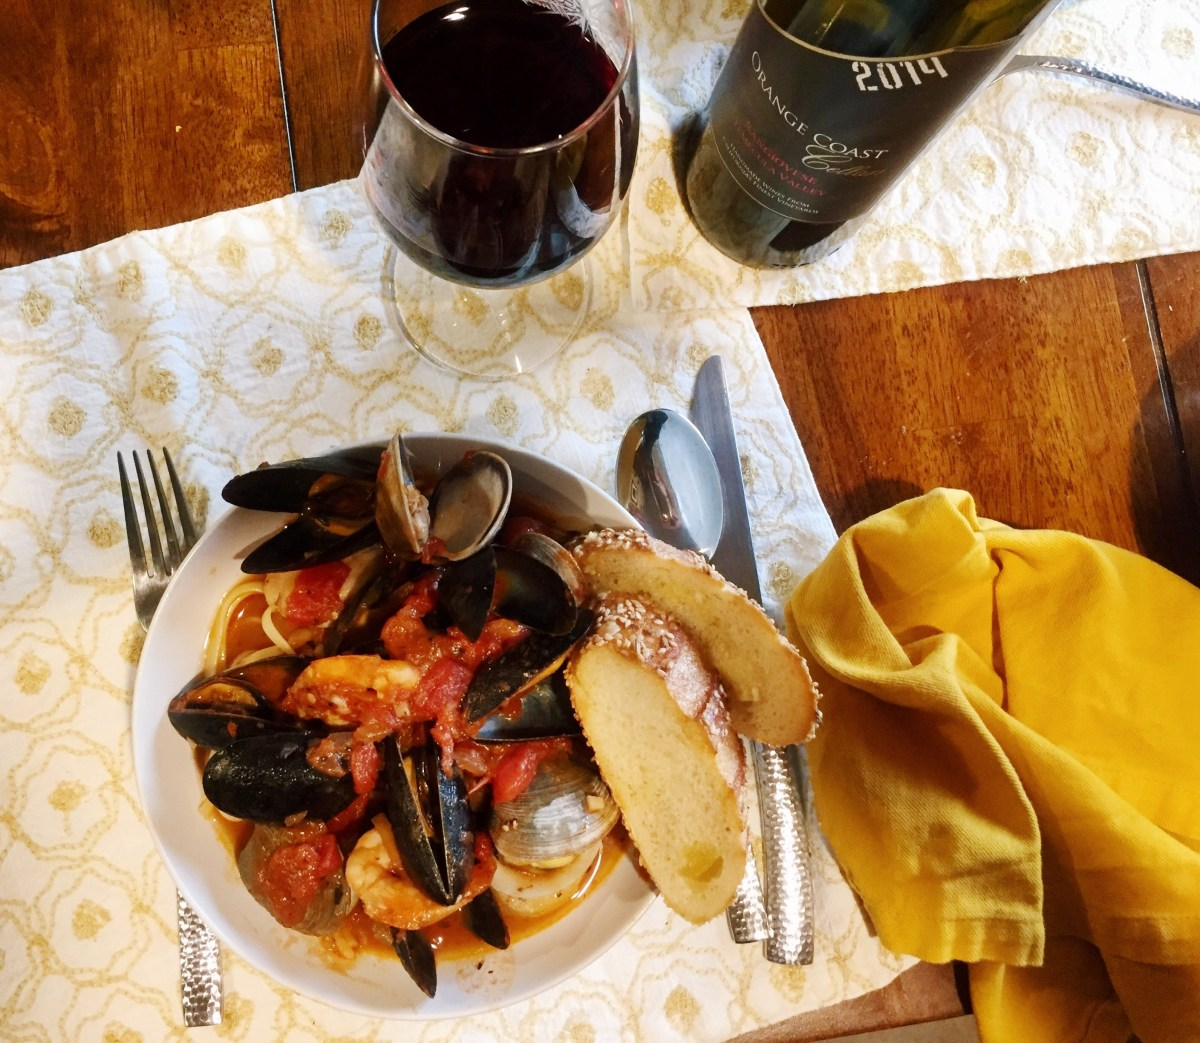 How To Make Cioppino for Date Night at Home